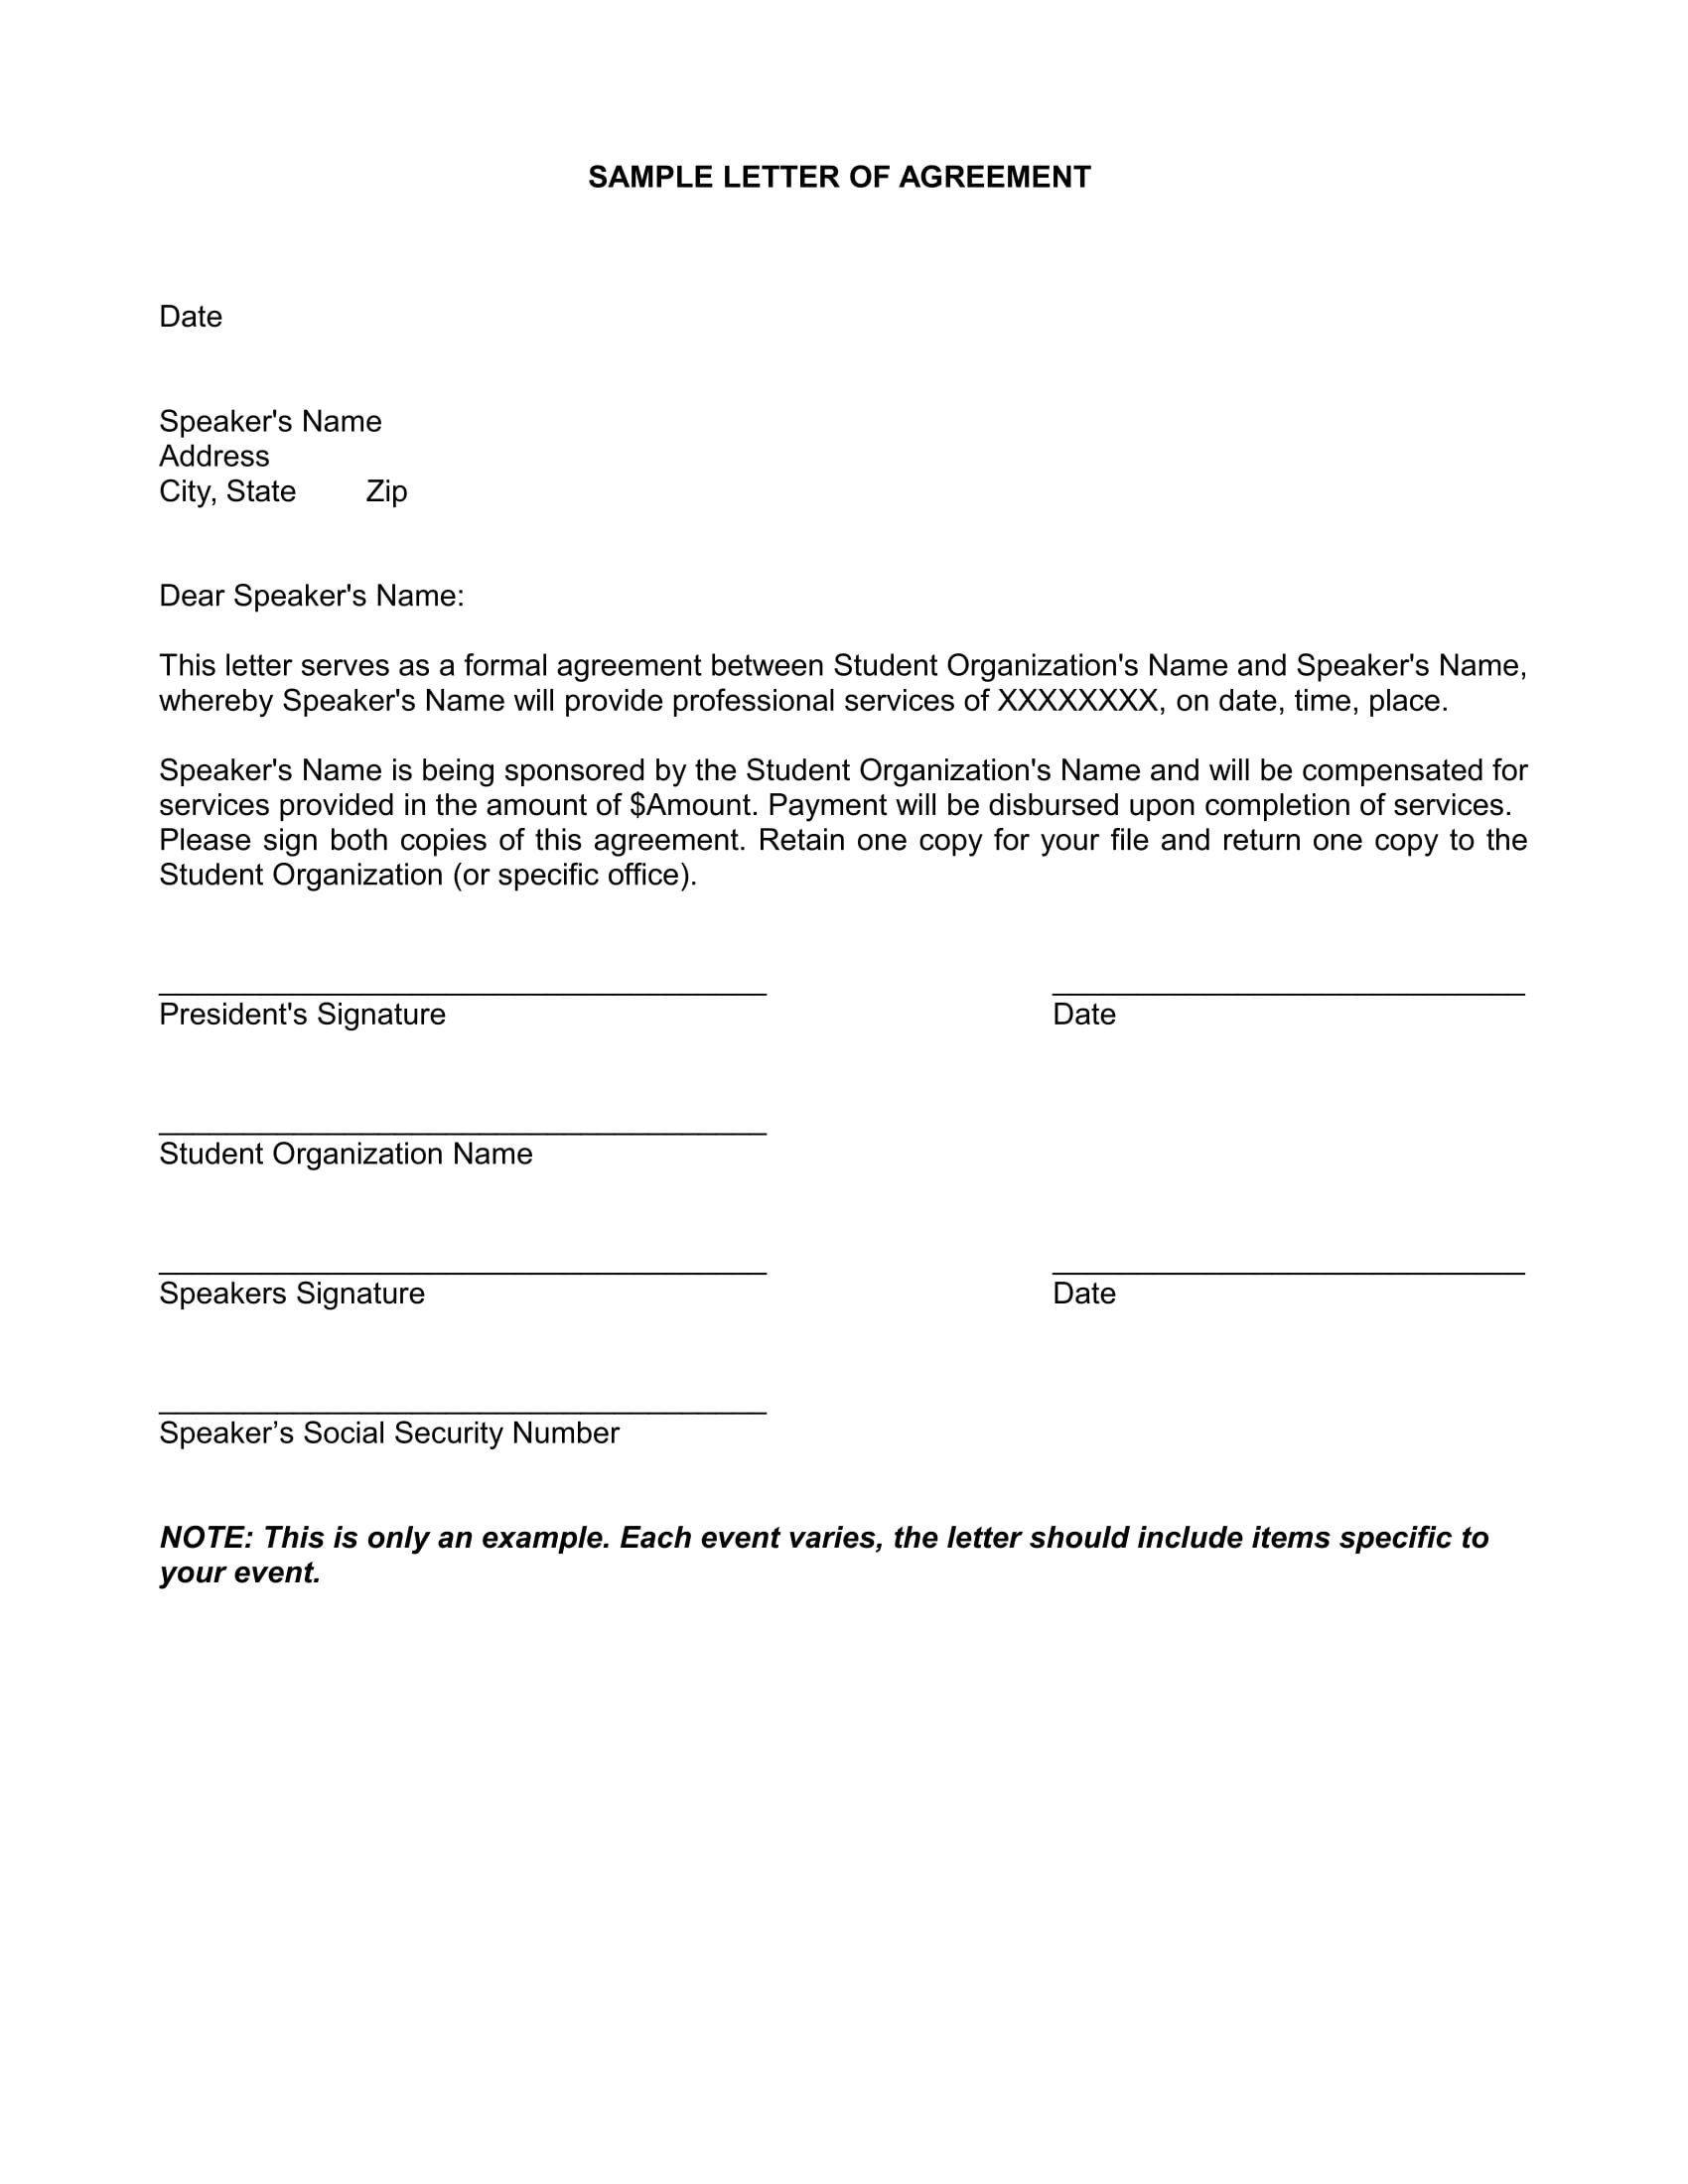 sample letter of agreement